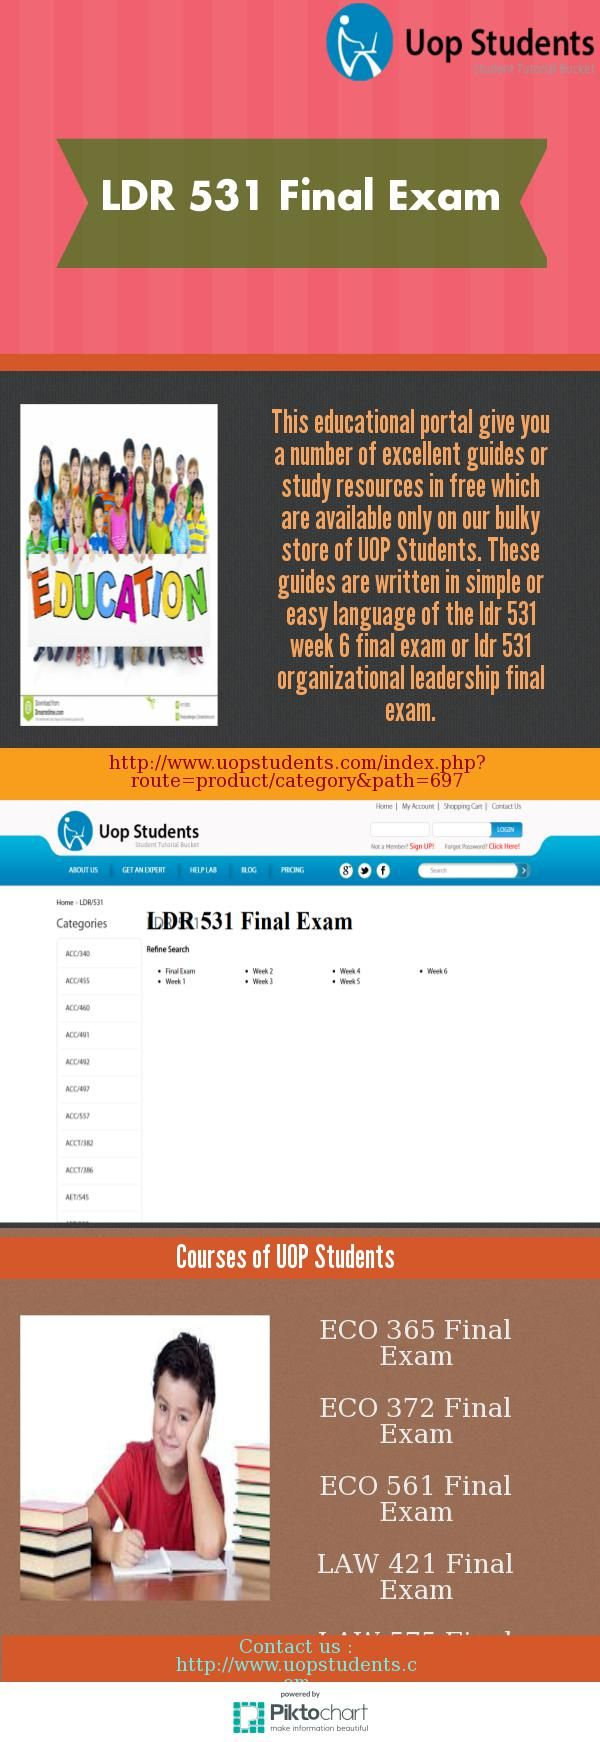 Upgrade  your LDR 531 Final examination, ldr 531 final exam questions and answers knowledge with new technology or online educational courses these are conducted by UOP Students in USA. This examination portal offers multiple category of online courses like that ldr 531 week 6 final exam, ldr 531 organizational leadership final exam for students.  http://www.uopstudents.com/index.php?route=product/category&path=697